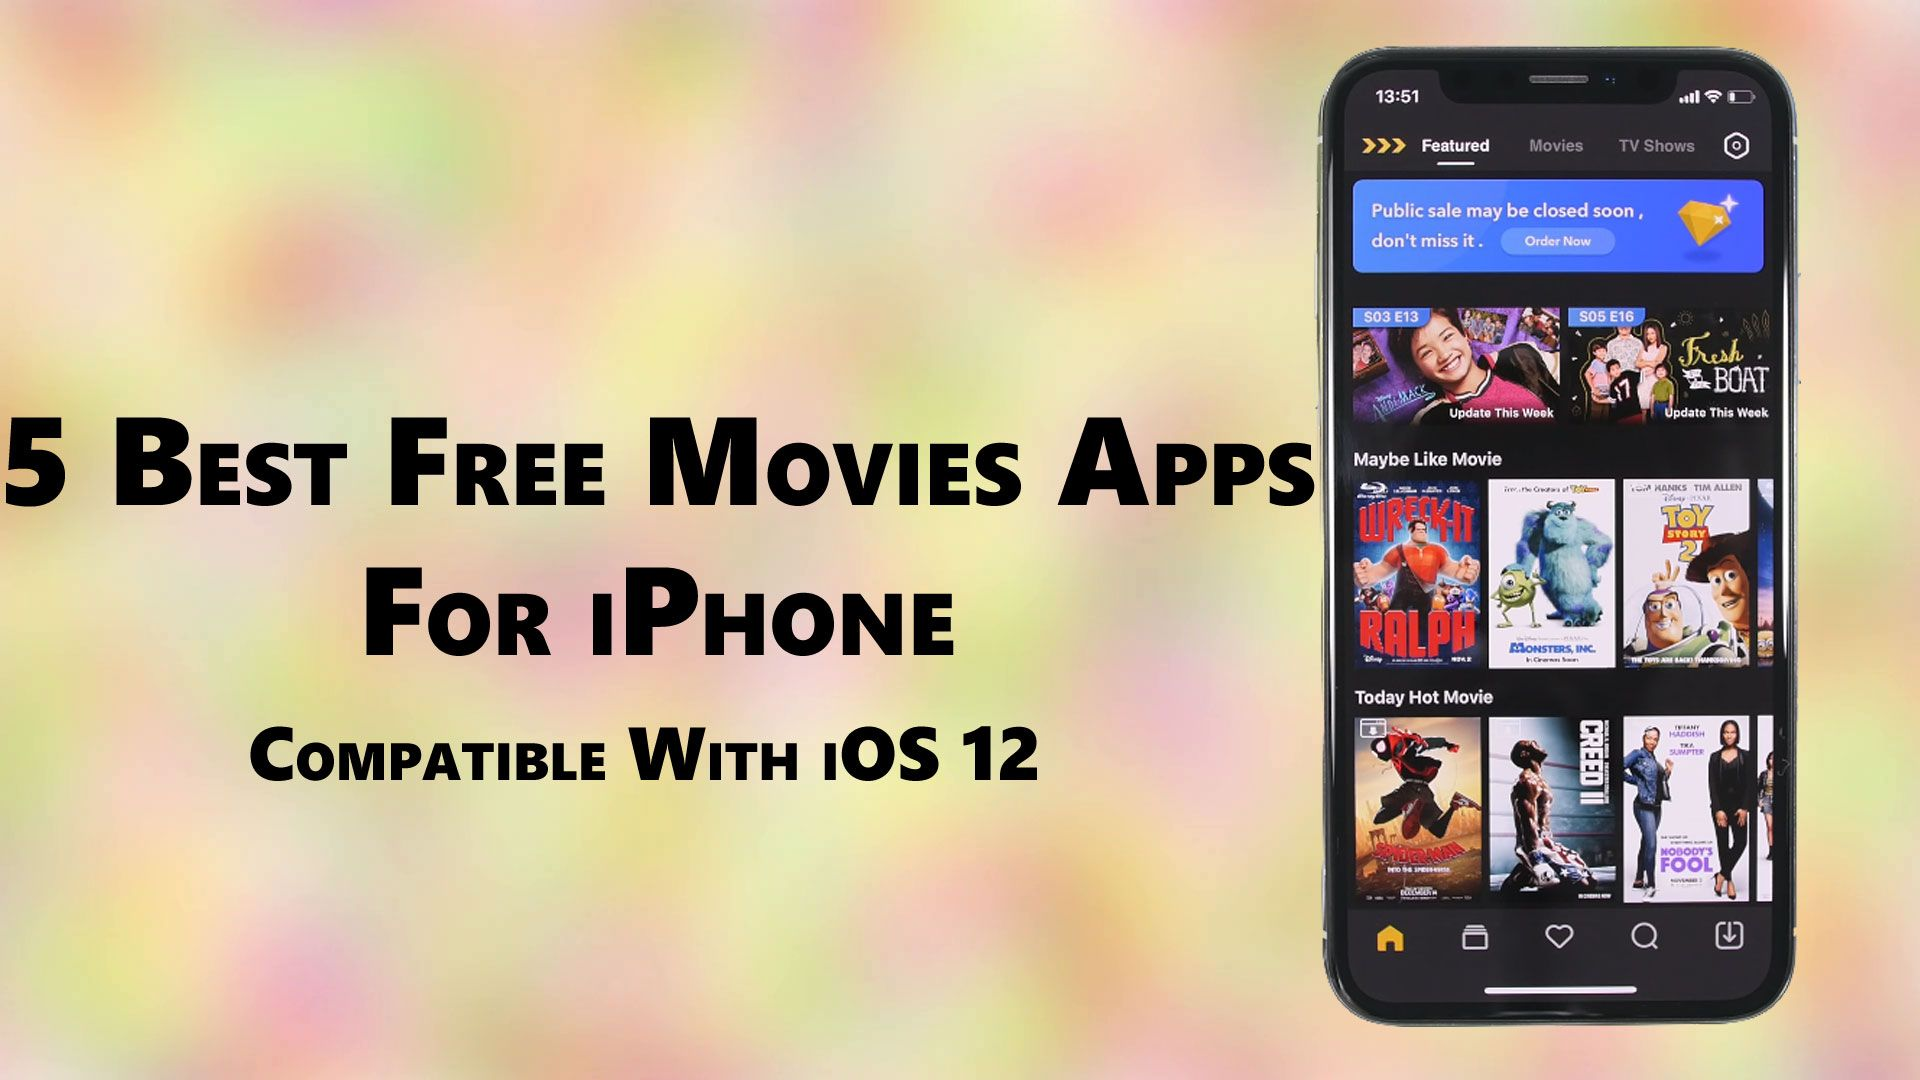 5 Best free movies for iPhone Iphone apps, Movie app